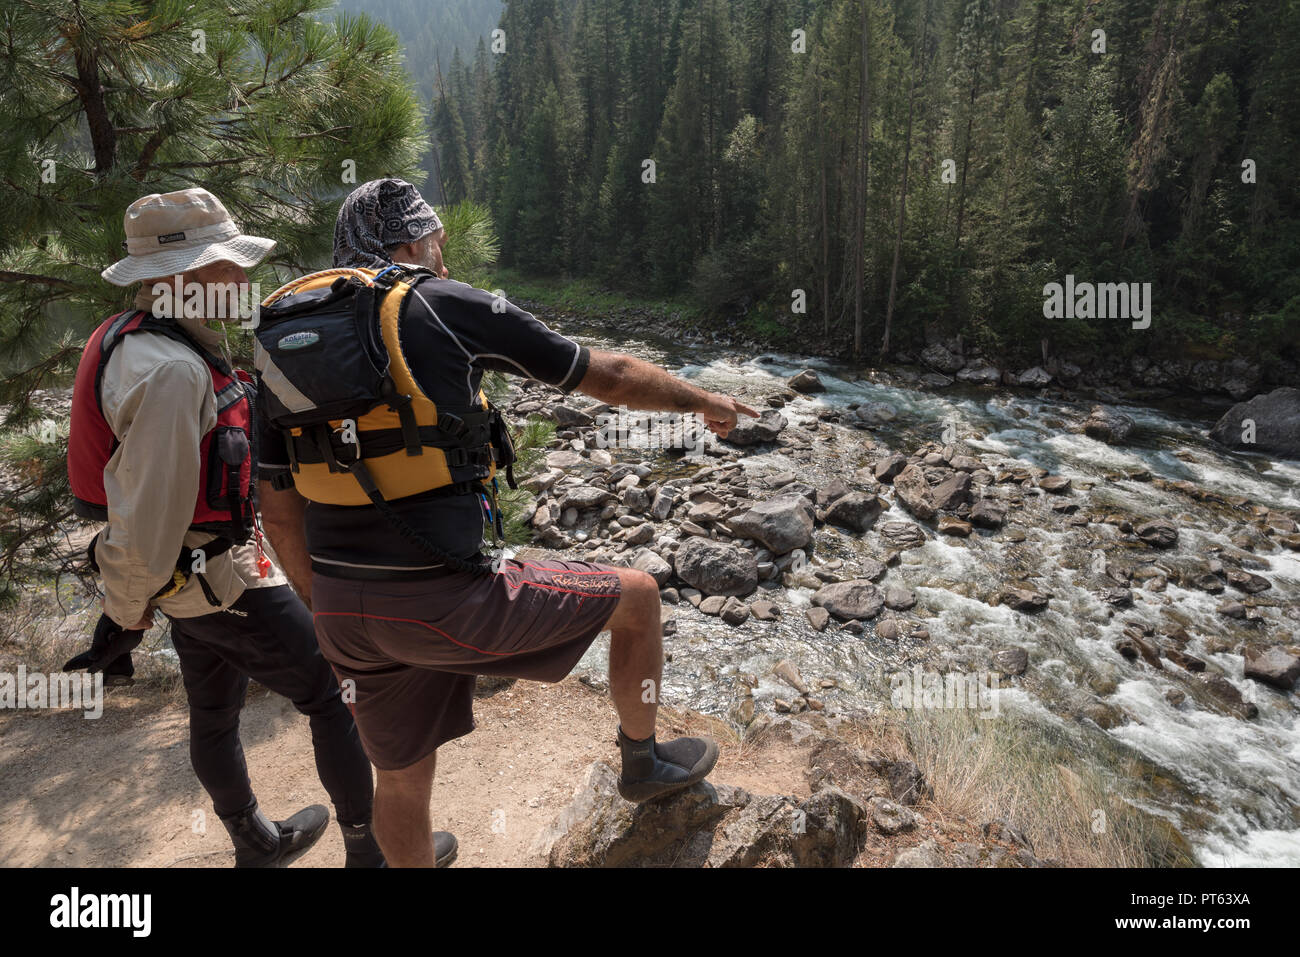 River runners scouting Wolf Creek Rapids on Idaho's Selway River. - Stock Image